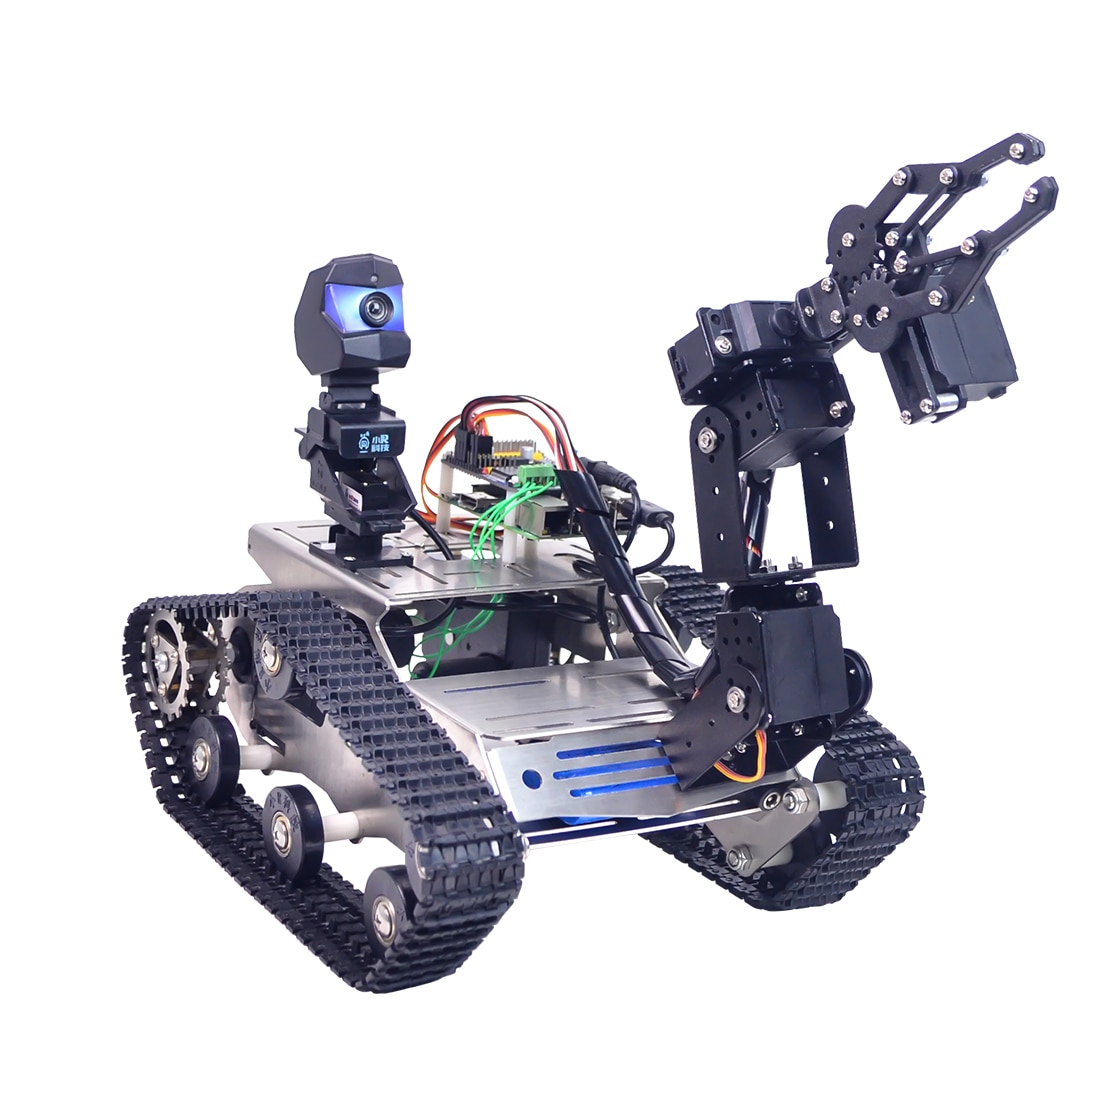 Cuctom EU Programmable TH WiFi FPV Tank Robot Arm Toys Games For Arduino MEGA - Standard Version Sma